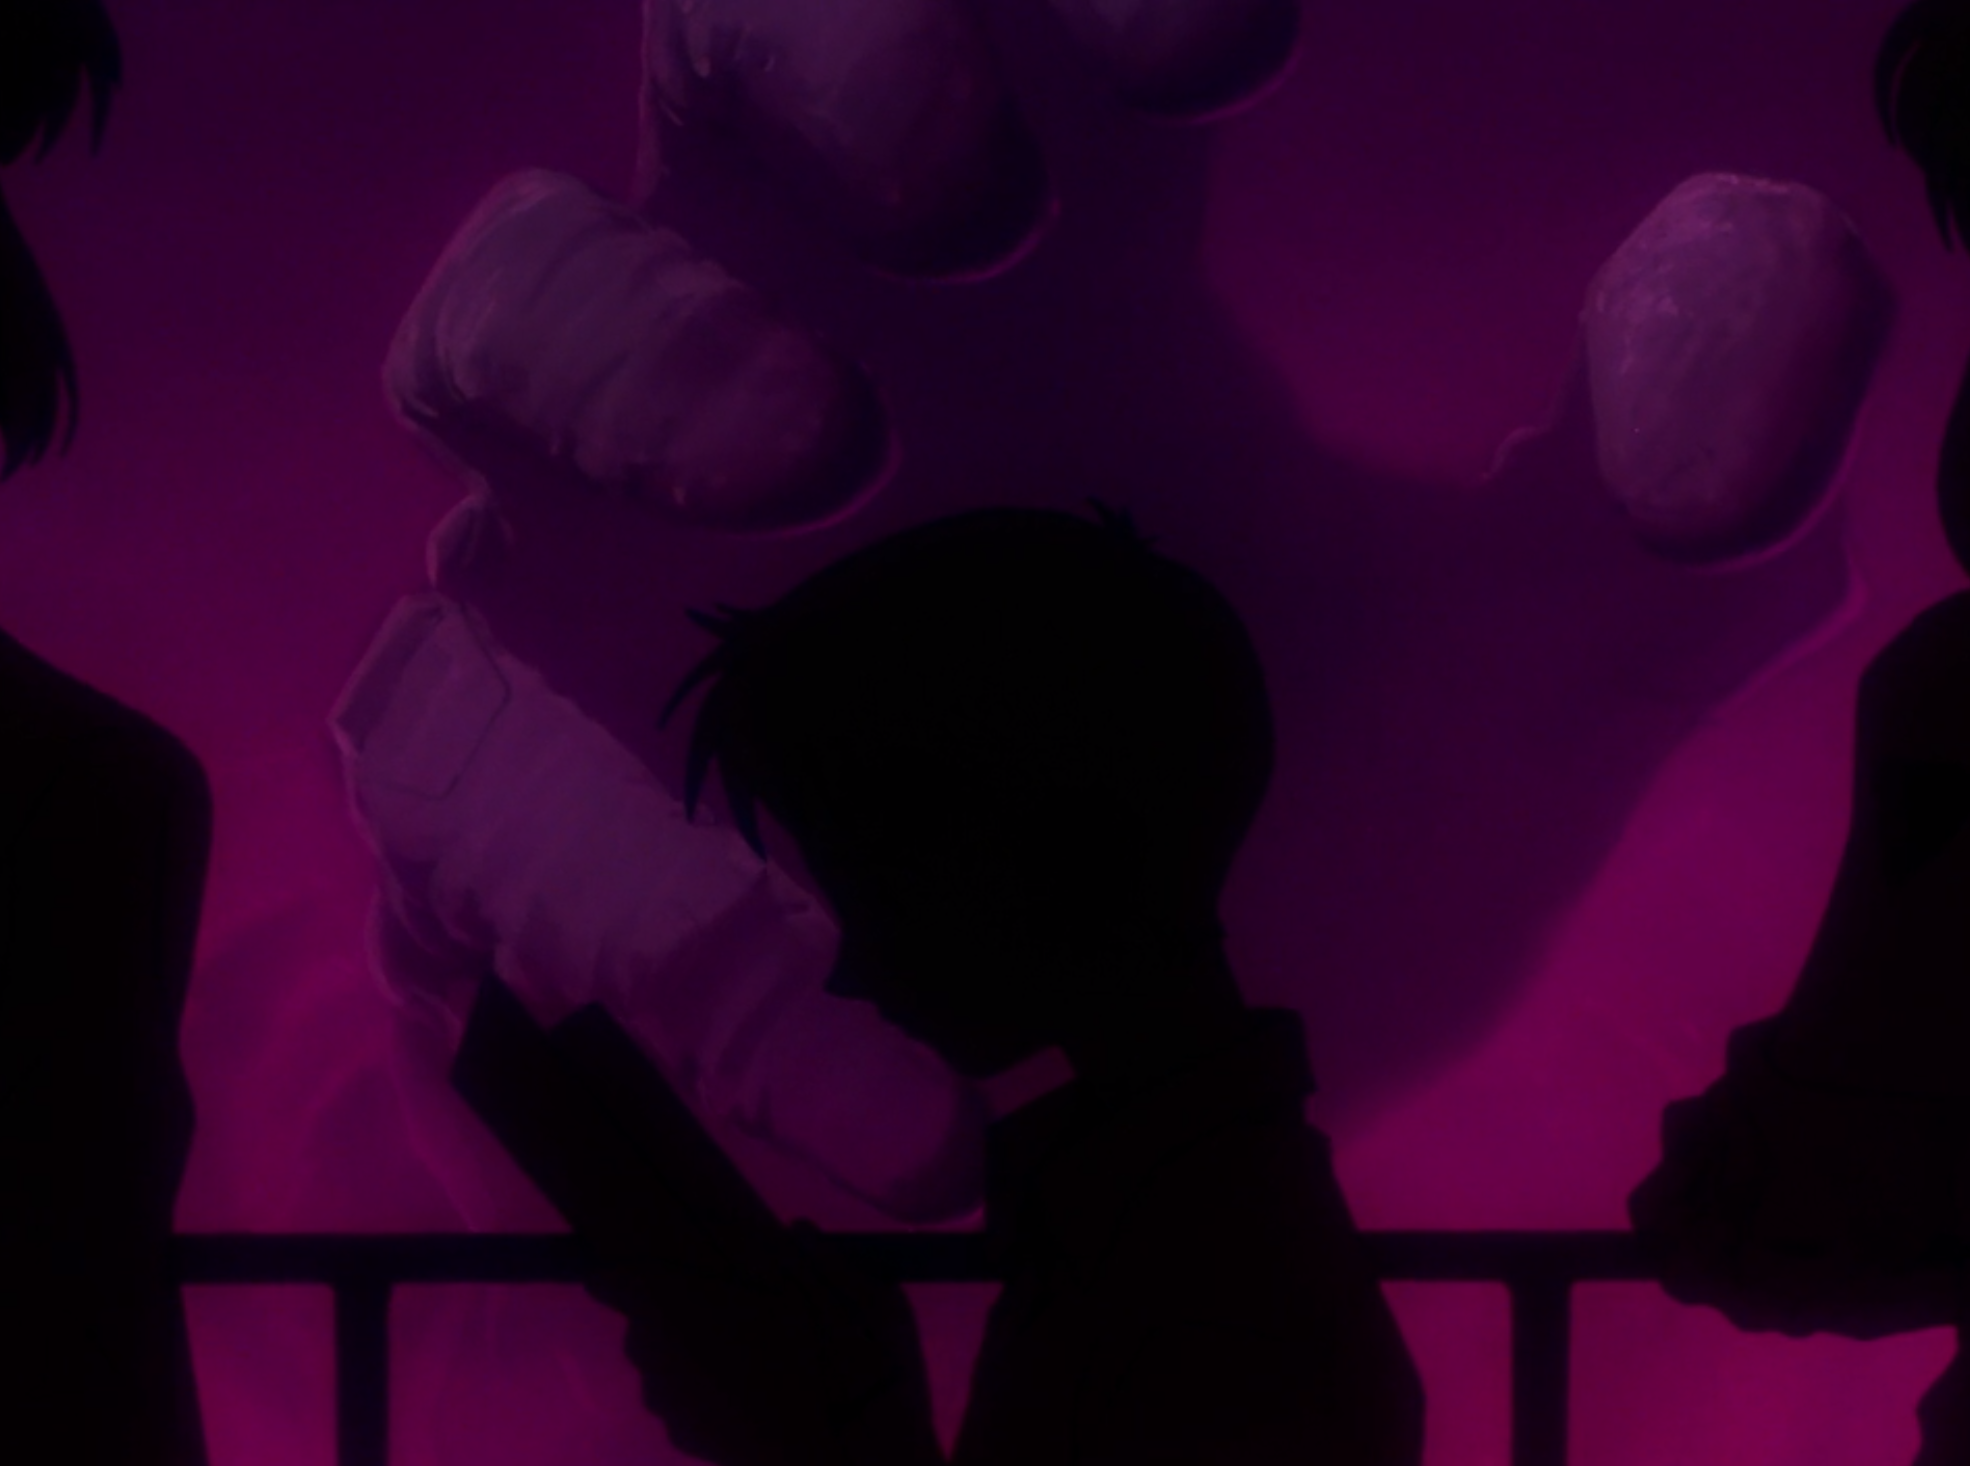 Shinji in front of hand in episode 1